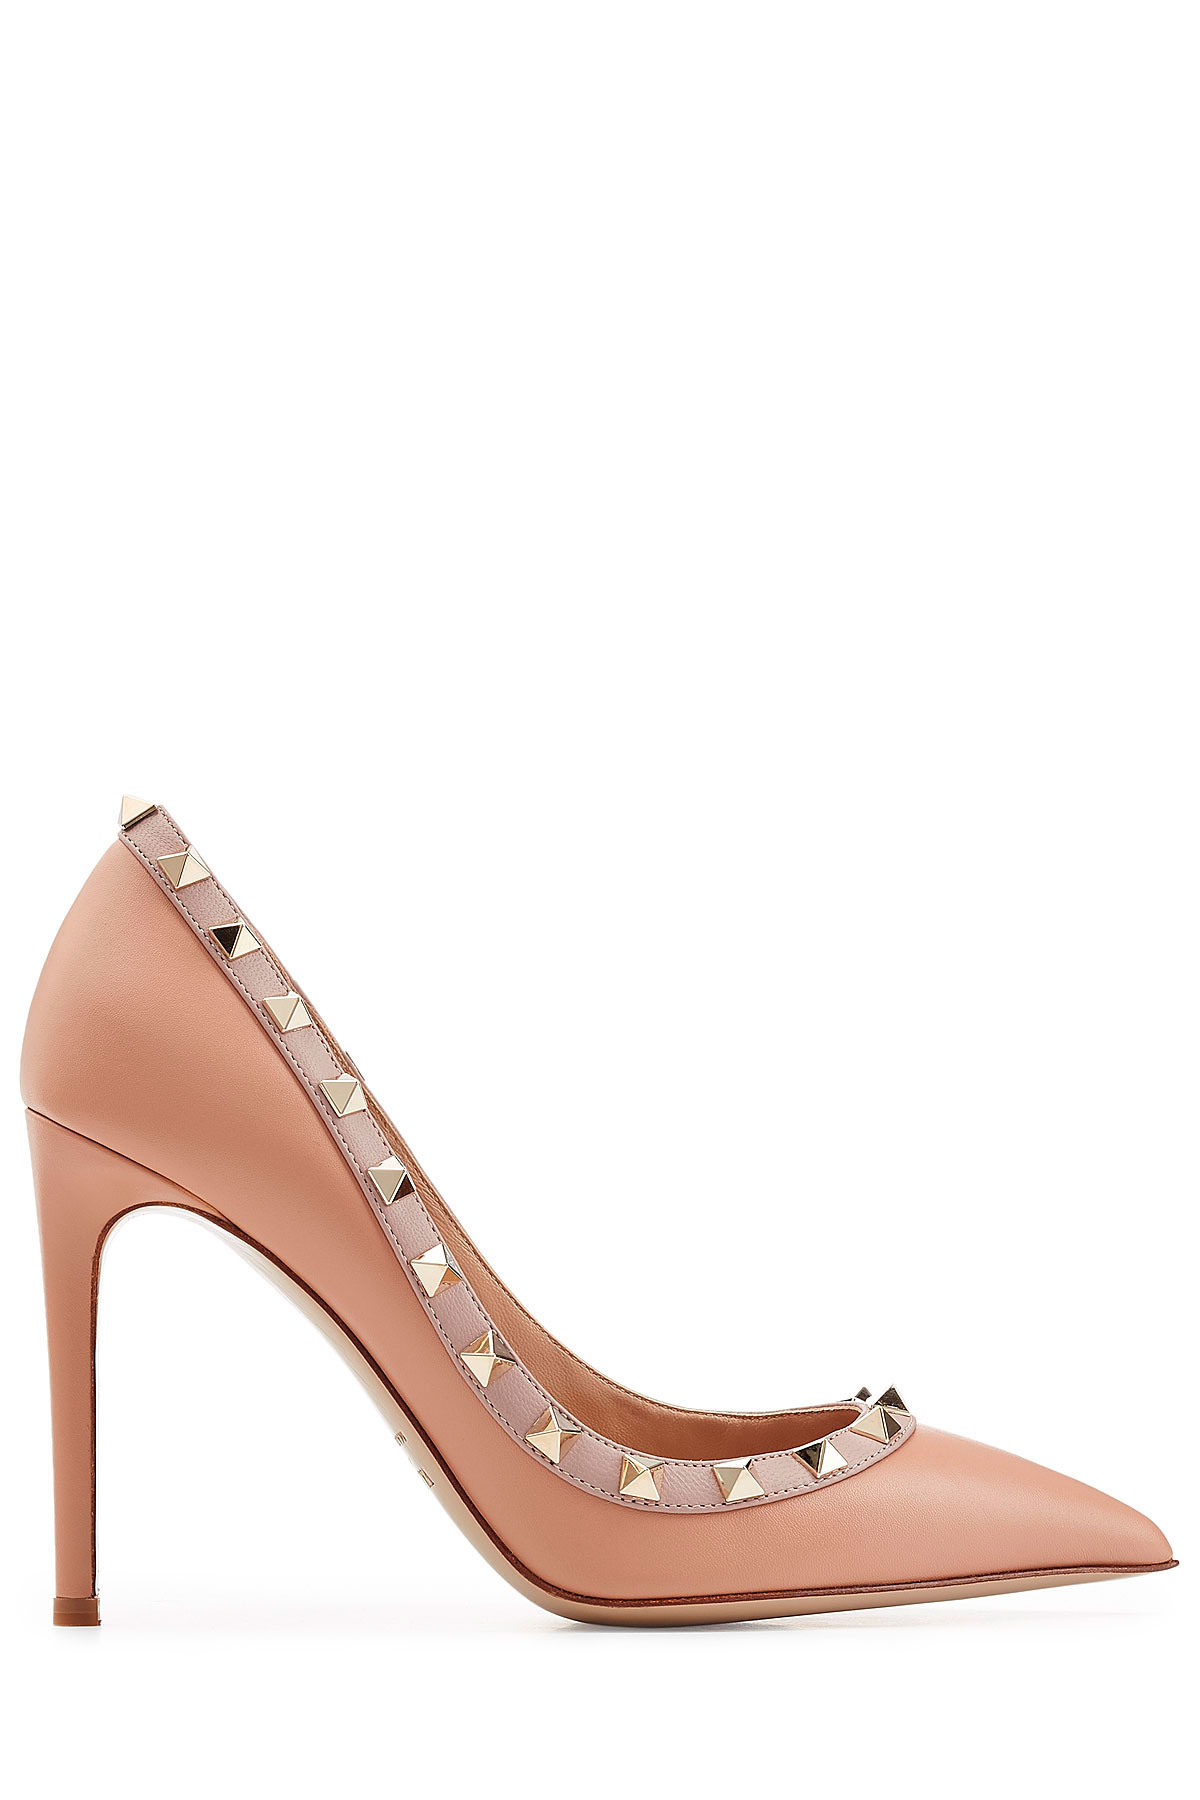 Valentino Leather Rockstud Pumps low price for sale zZhtzRuVD